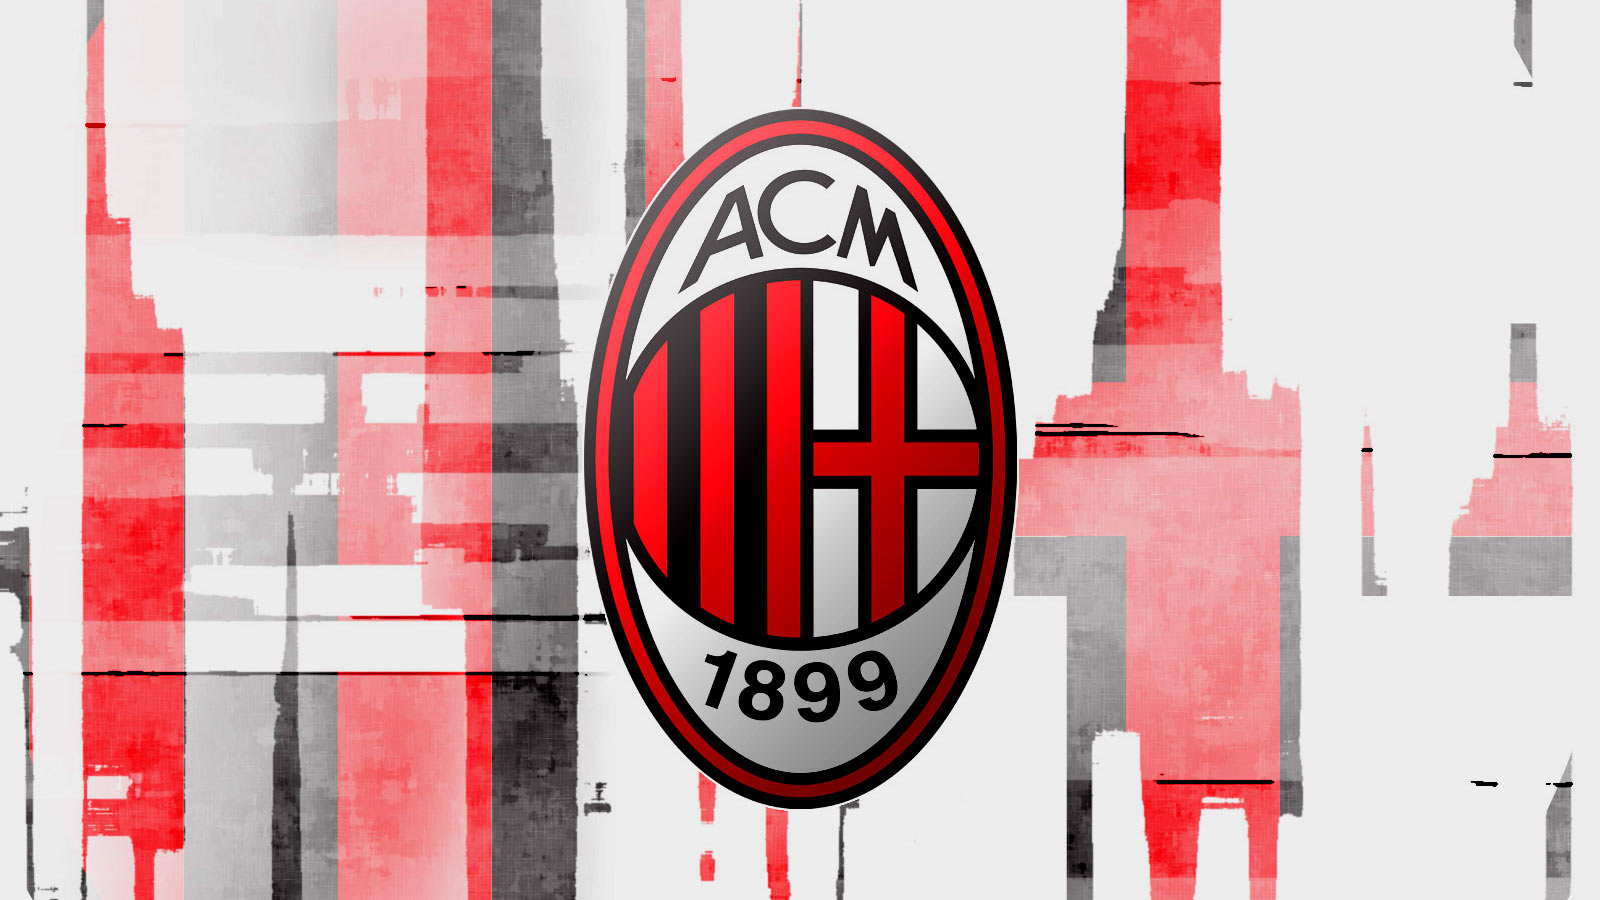 Tags AC Milan Wallpapers HD High Resolution High Definition High 1600x900